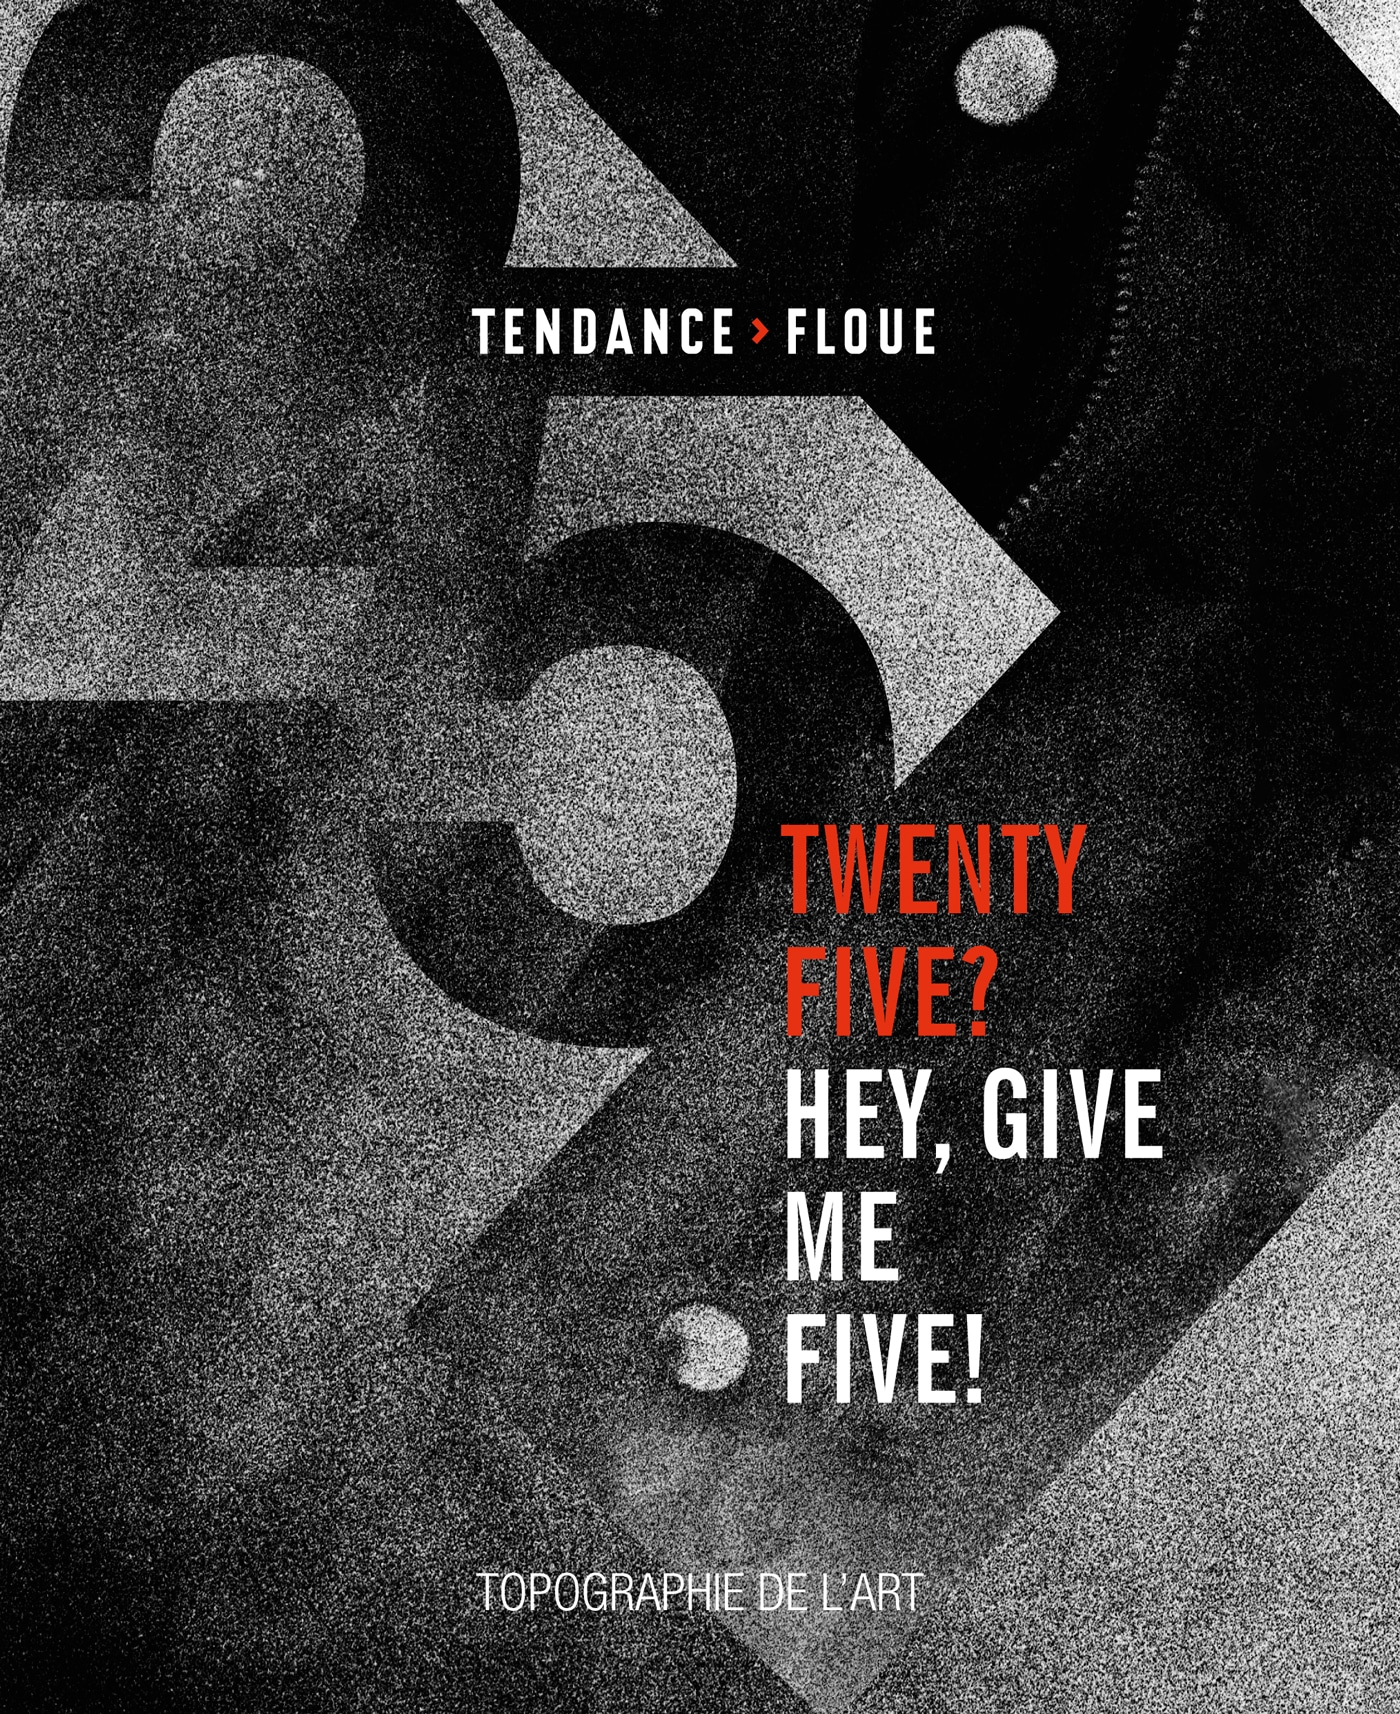 Tendance Floue : Twenty-five ? Hey, give me five !